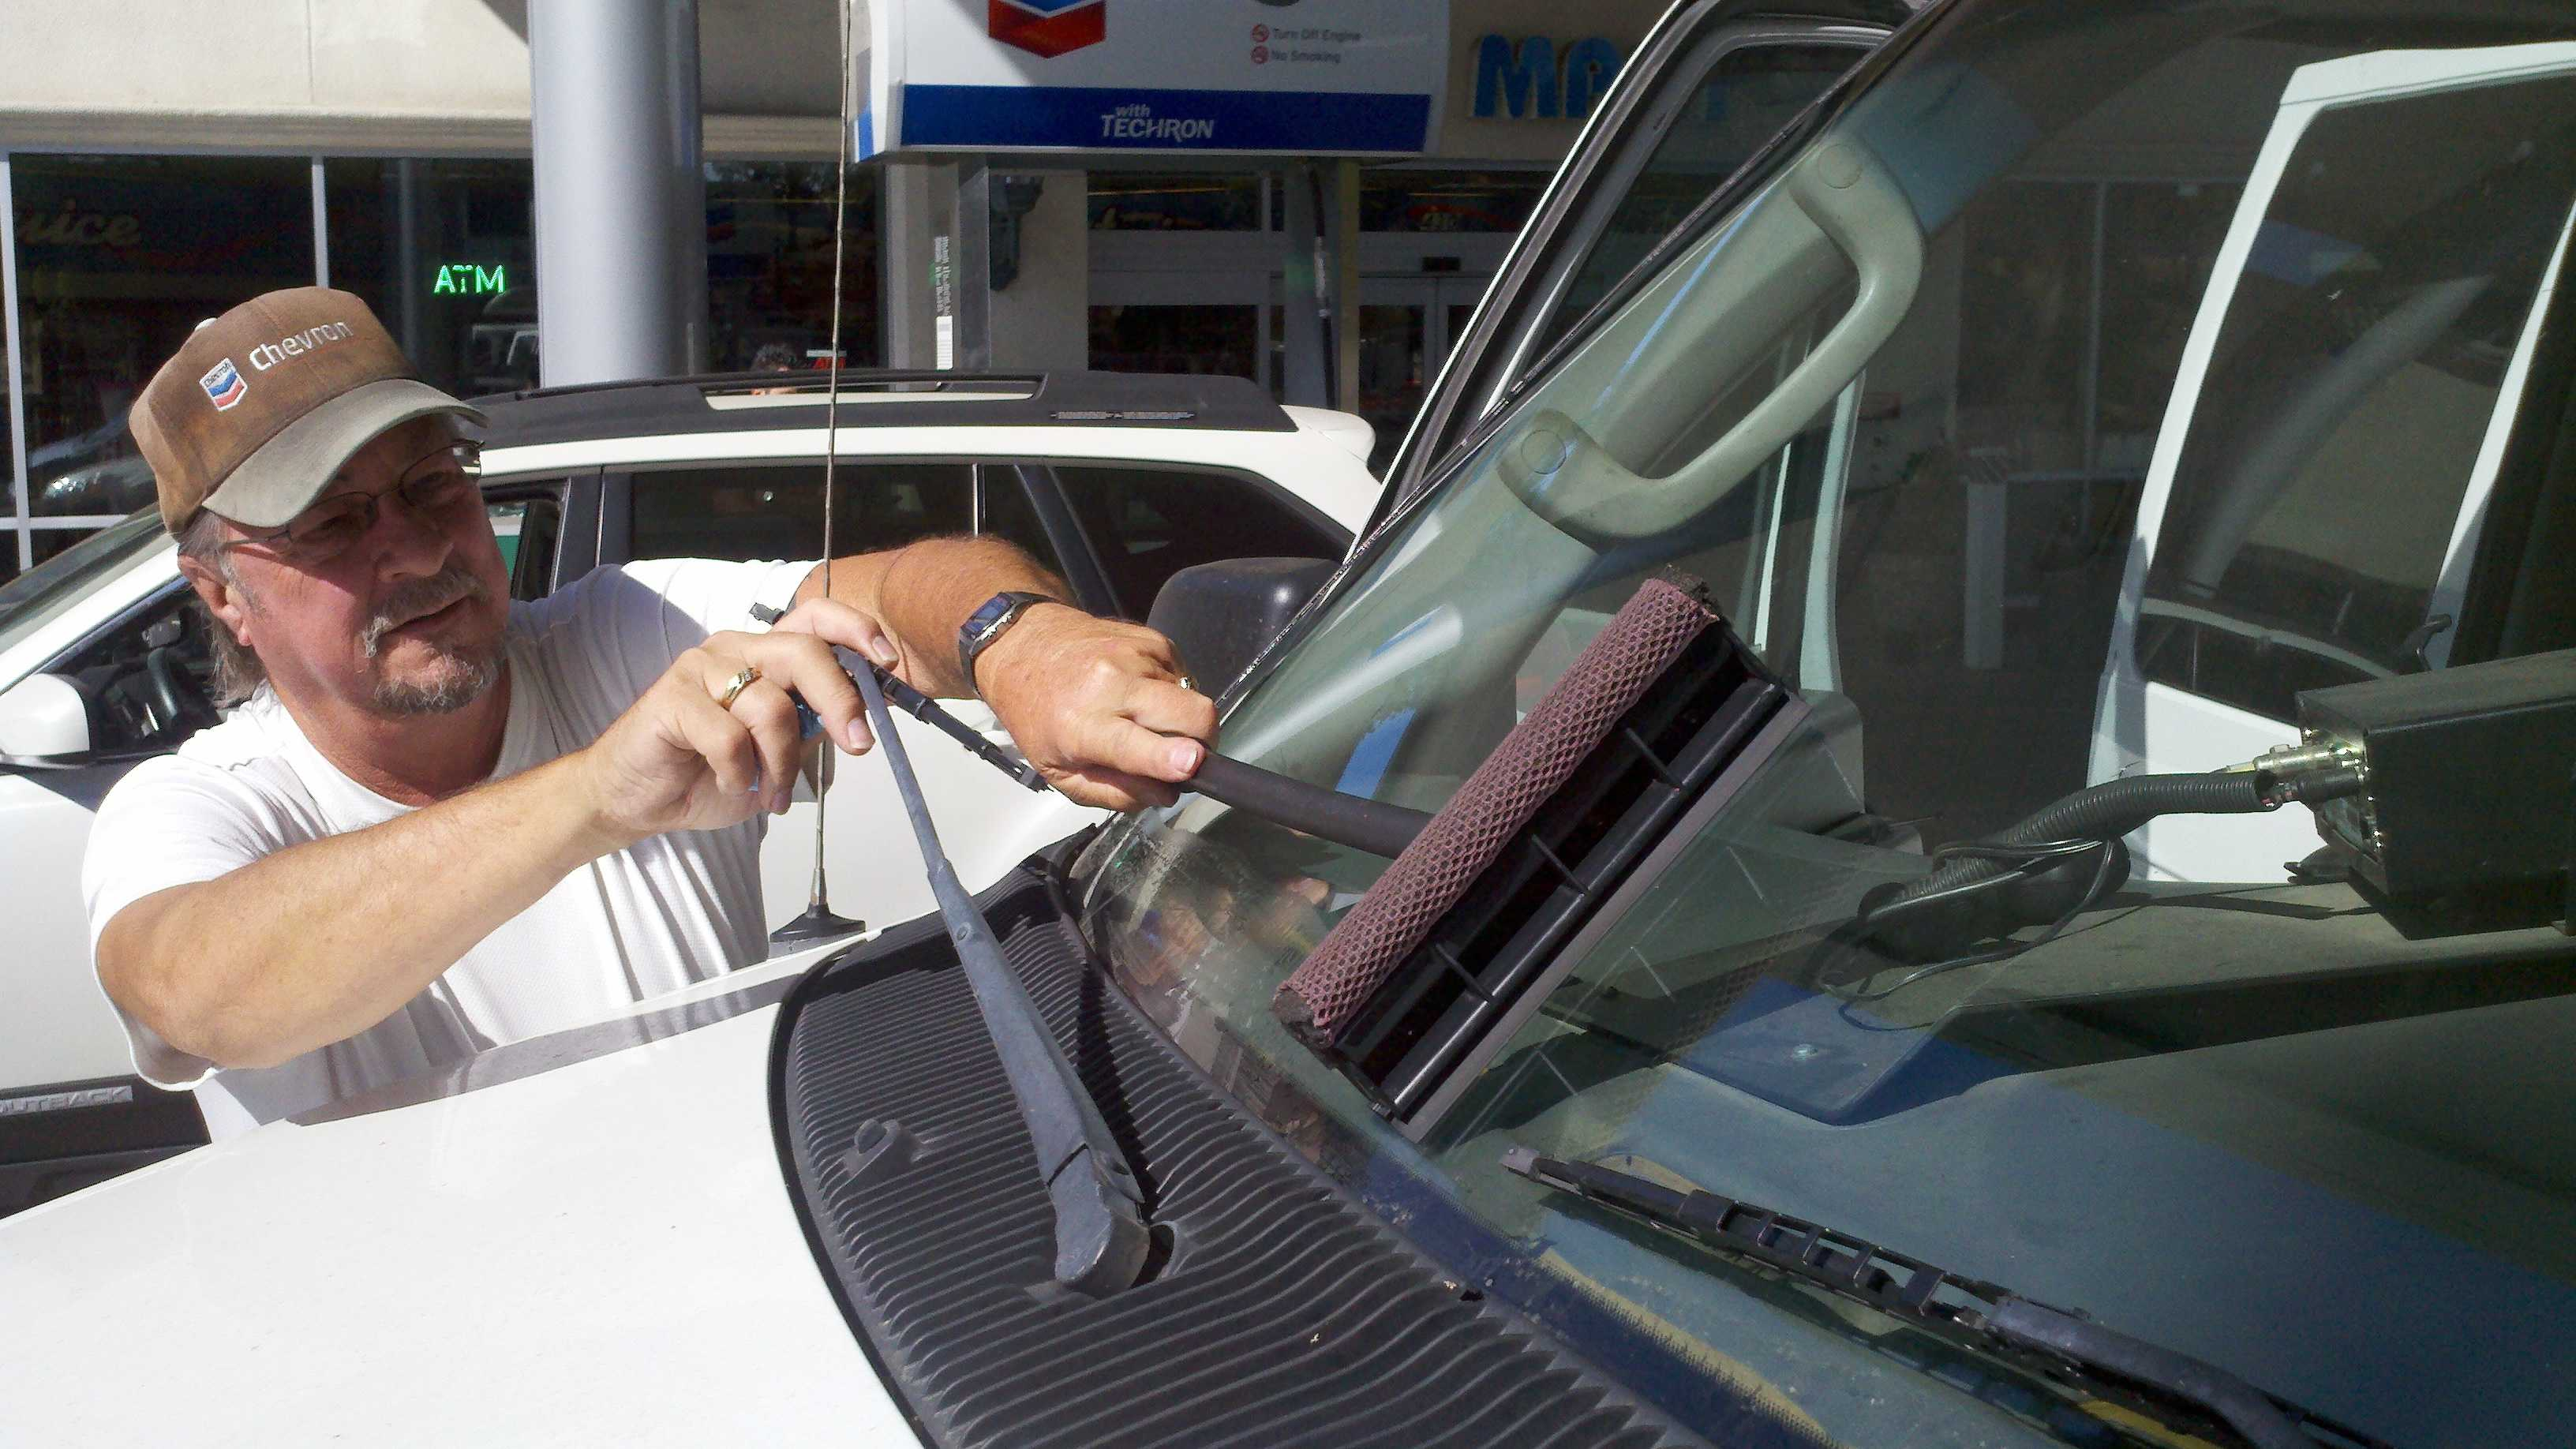 Don Kine wipes a windshield at a gas station near 29th and D streets in Sacramento.